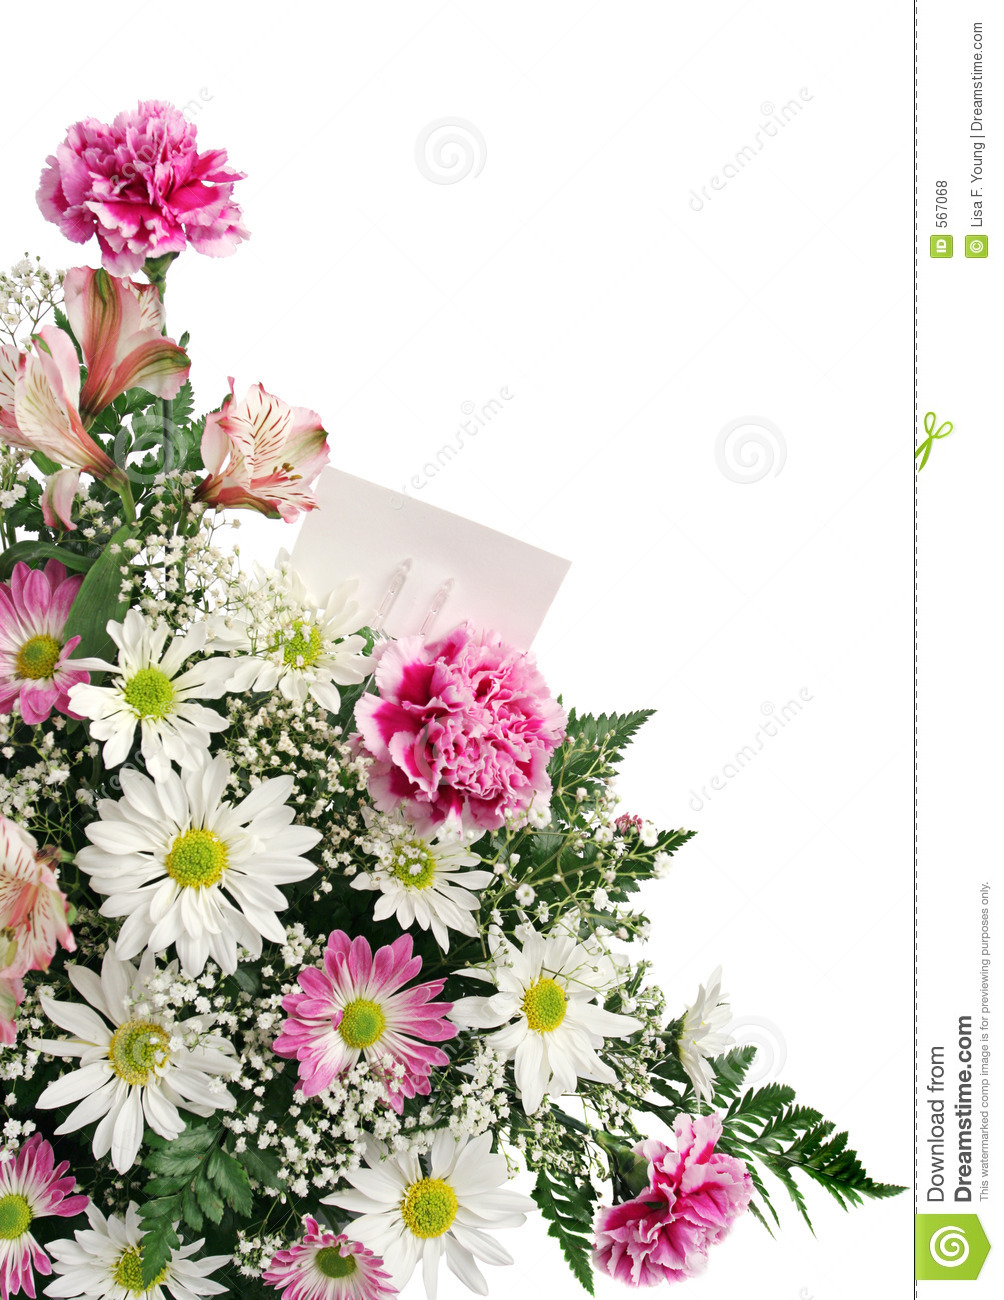 Flower Border Gift Card Royalty Free Stock Photos - Image: 567068